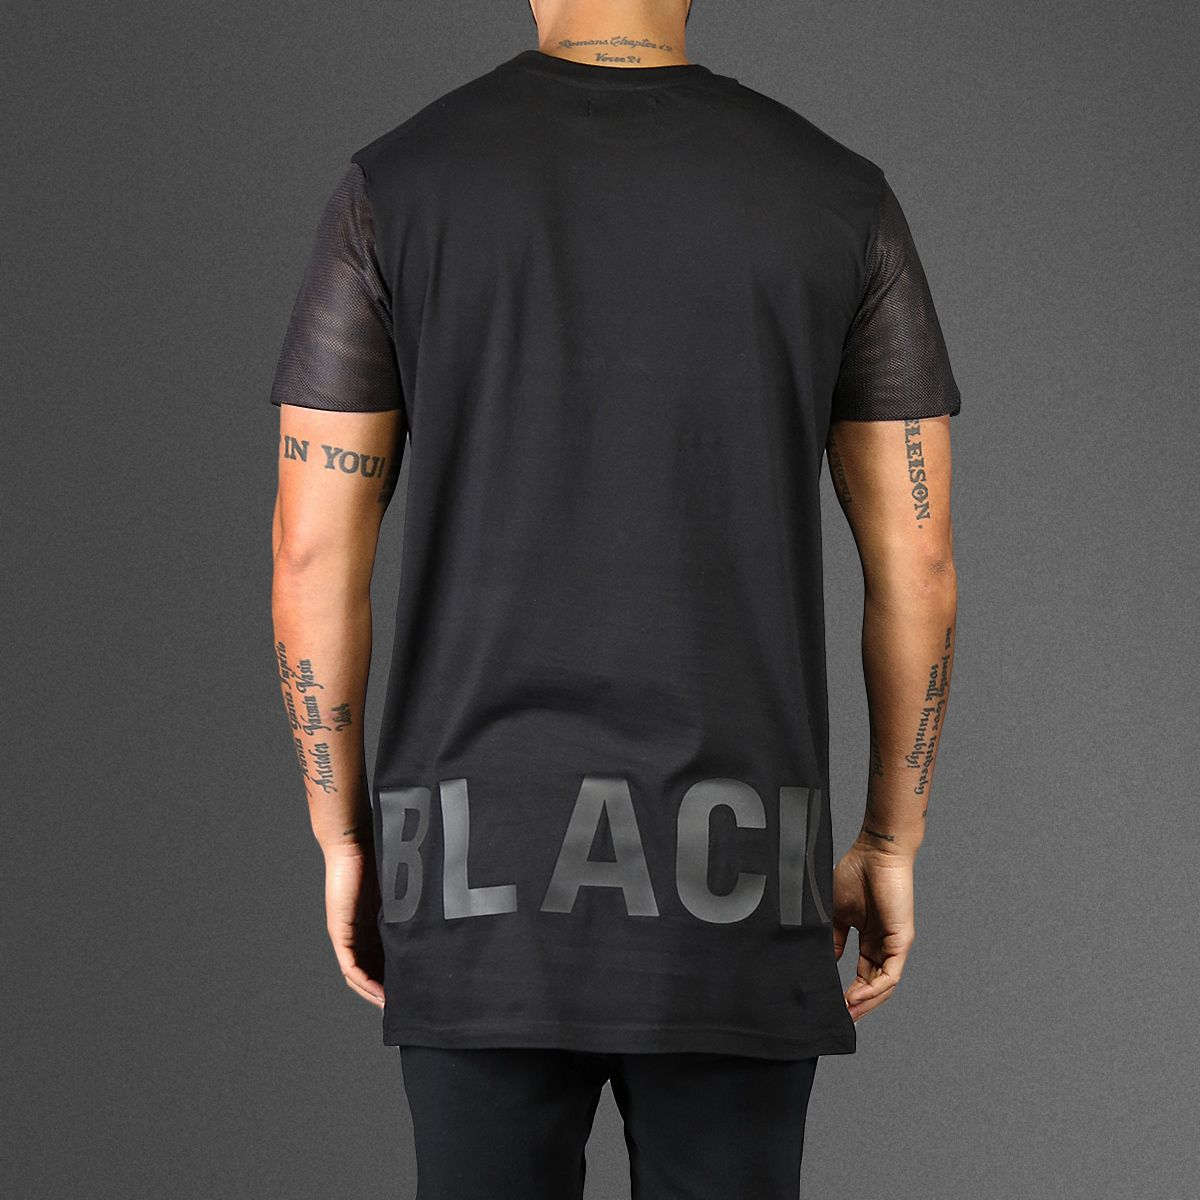 Black t shirt front and back - Still Hot Is The Fashion For Extra Long T Shirts This Simple Eleven Paris Tank Is Plain On The Front With A Simple Black On Black Screen Print On The Back